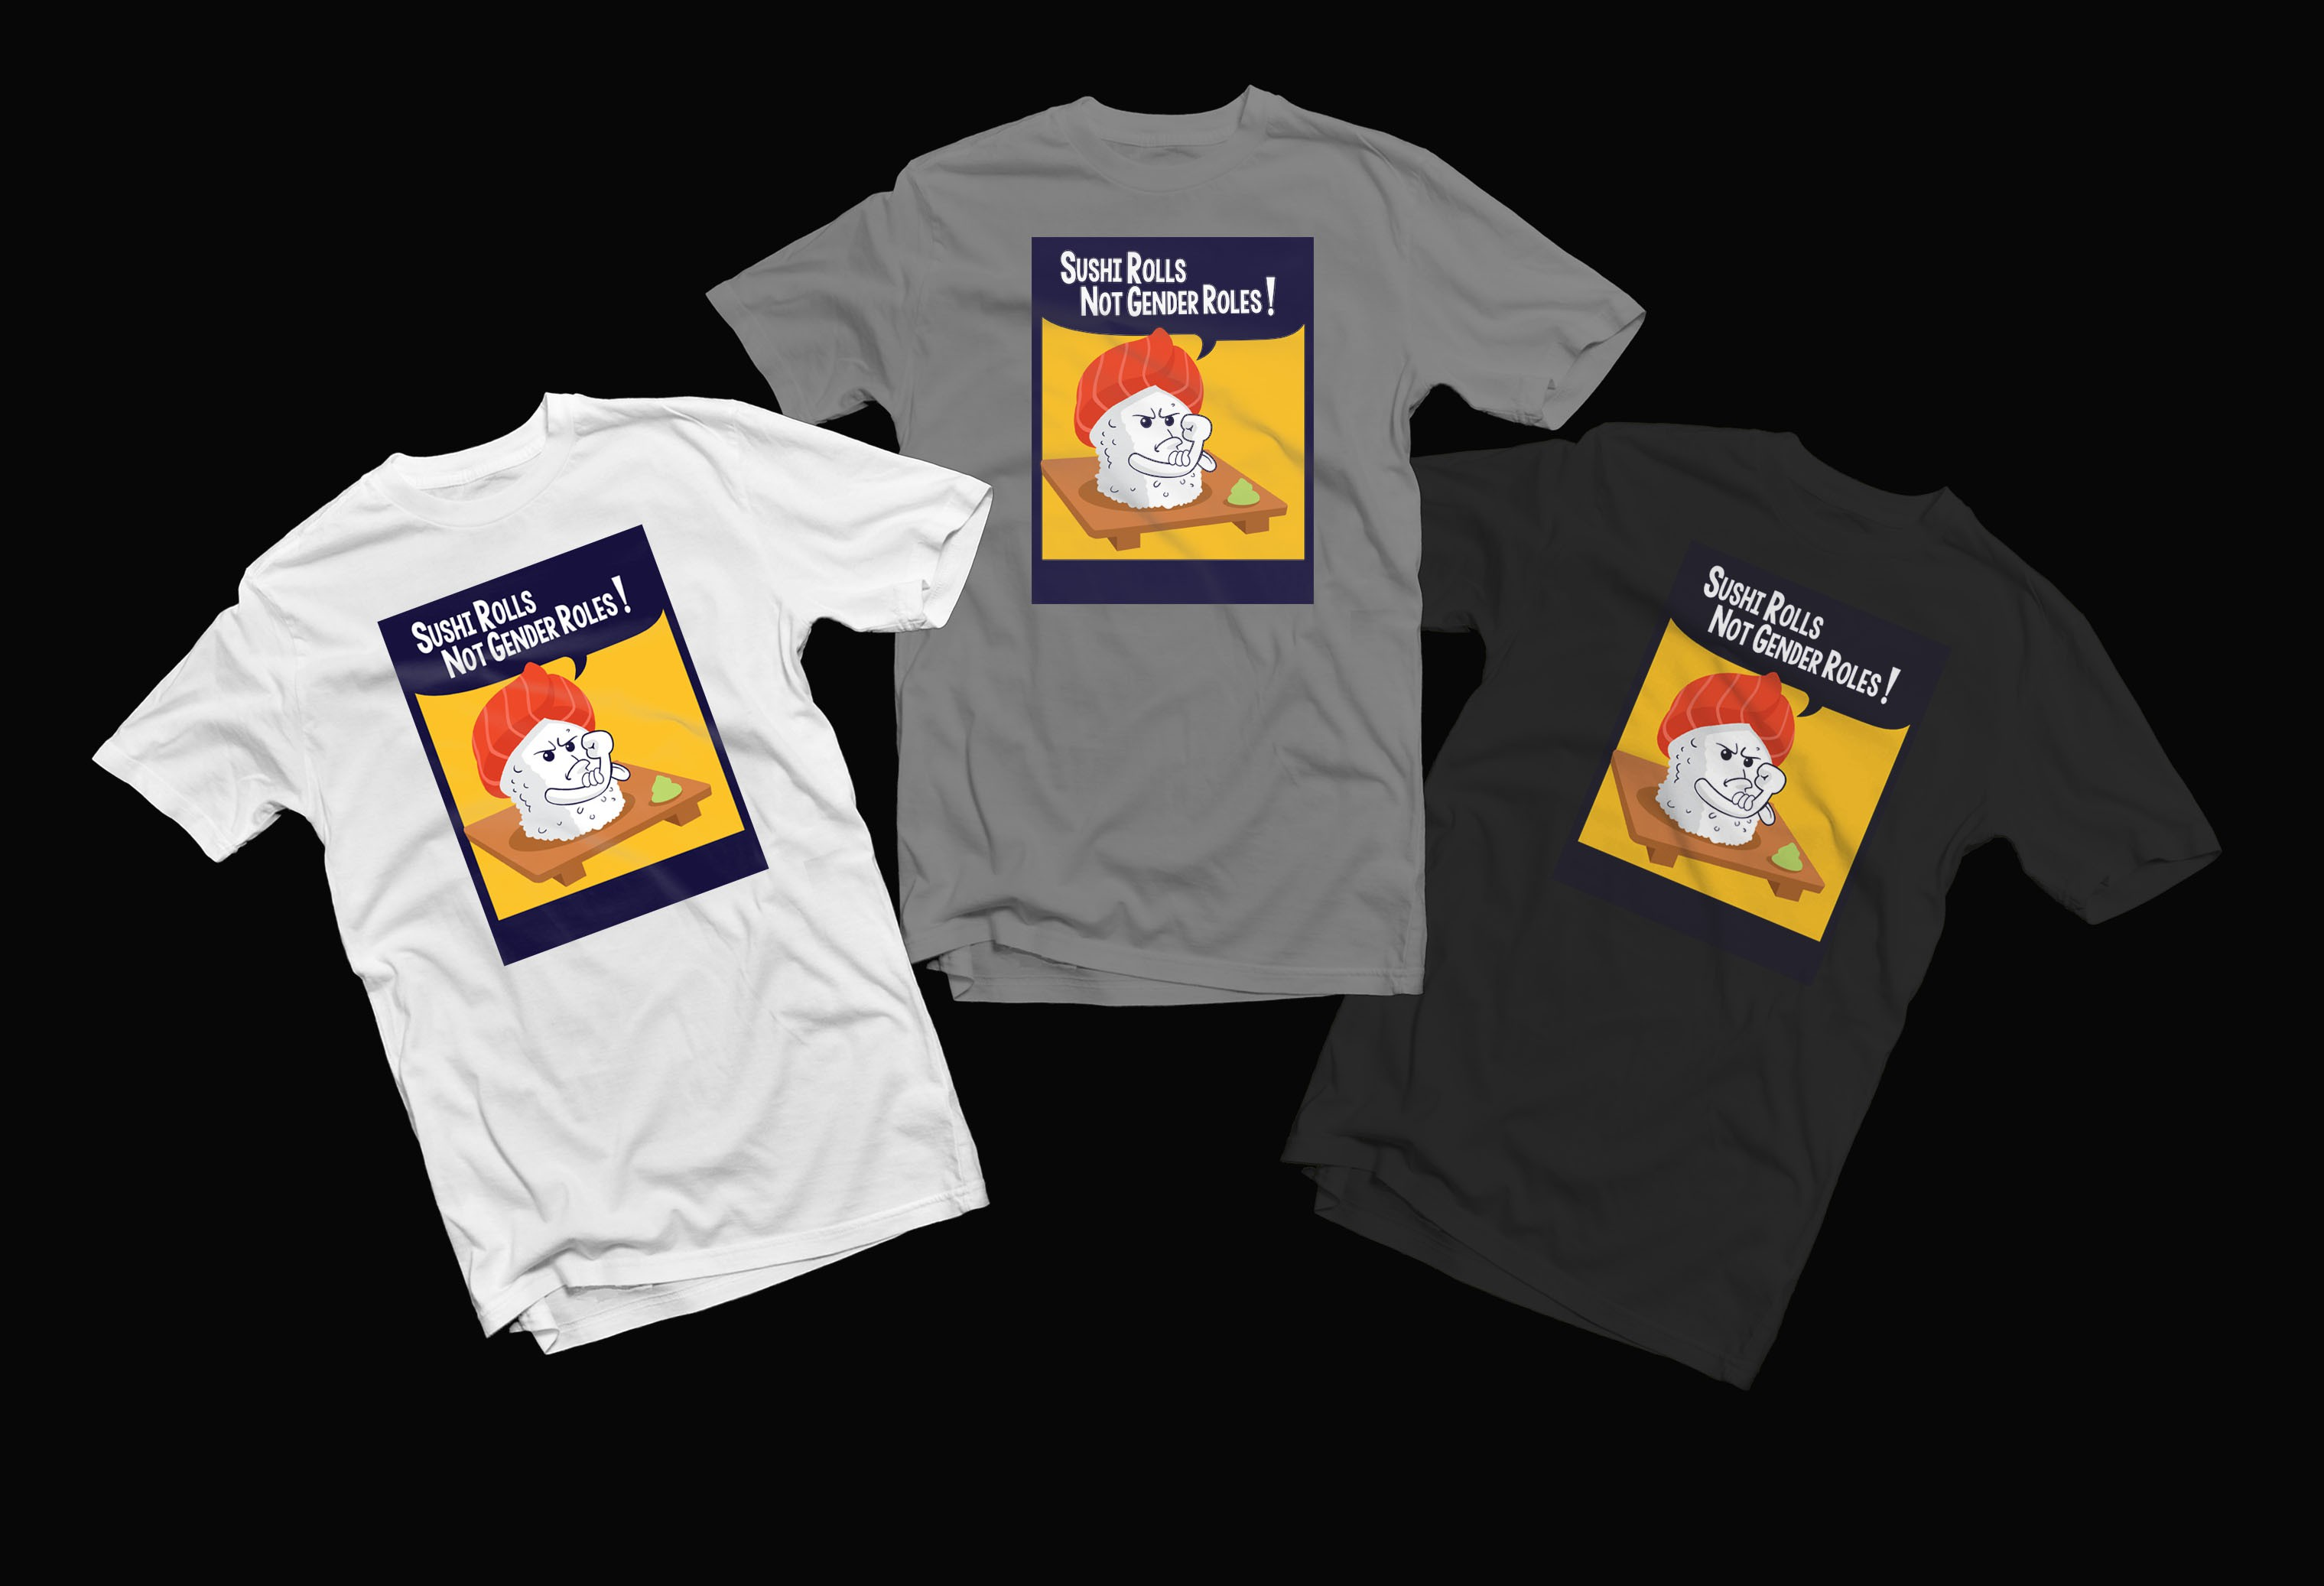 Raw Sushi Themed T-shirt (More Than 1 Design Will Be Selected)